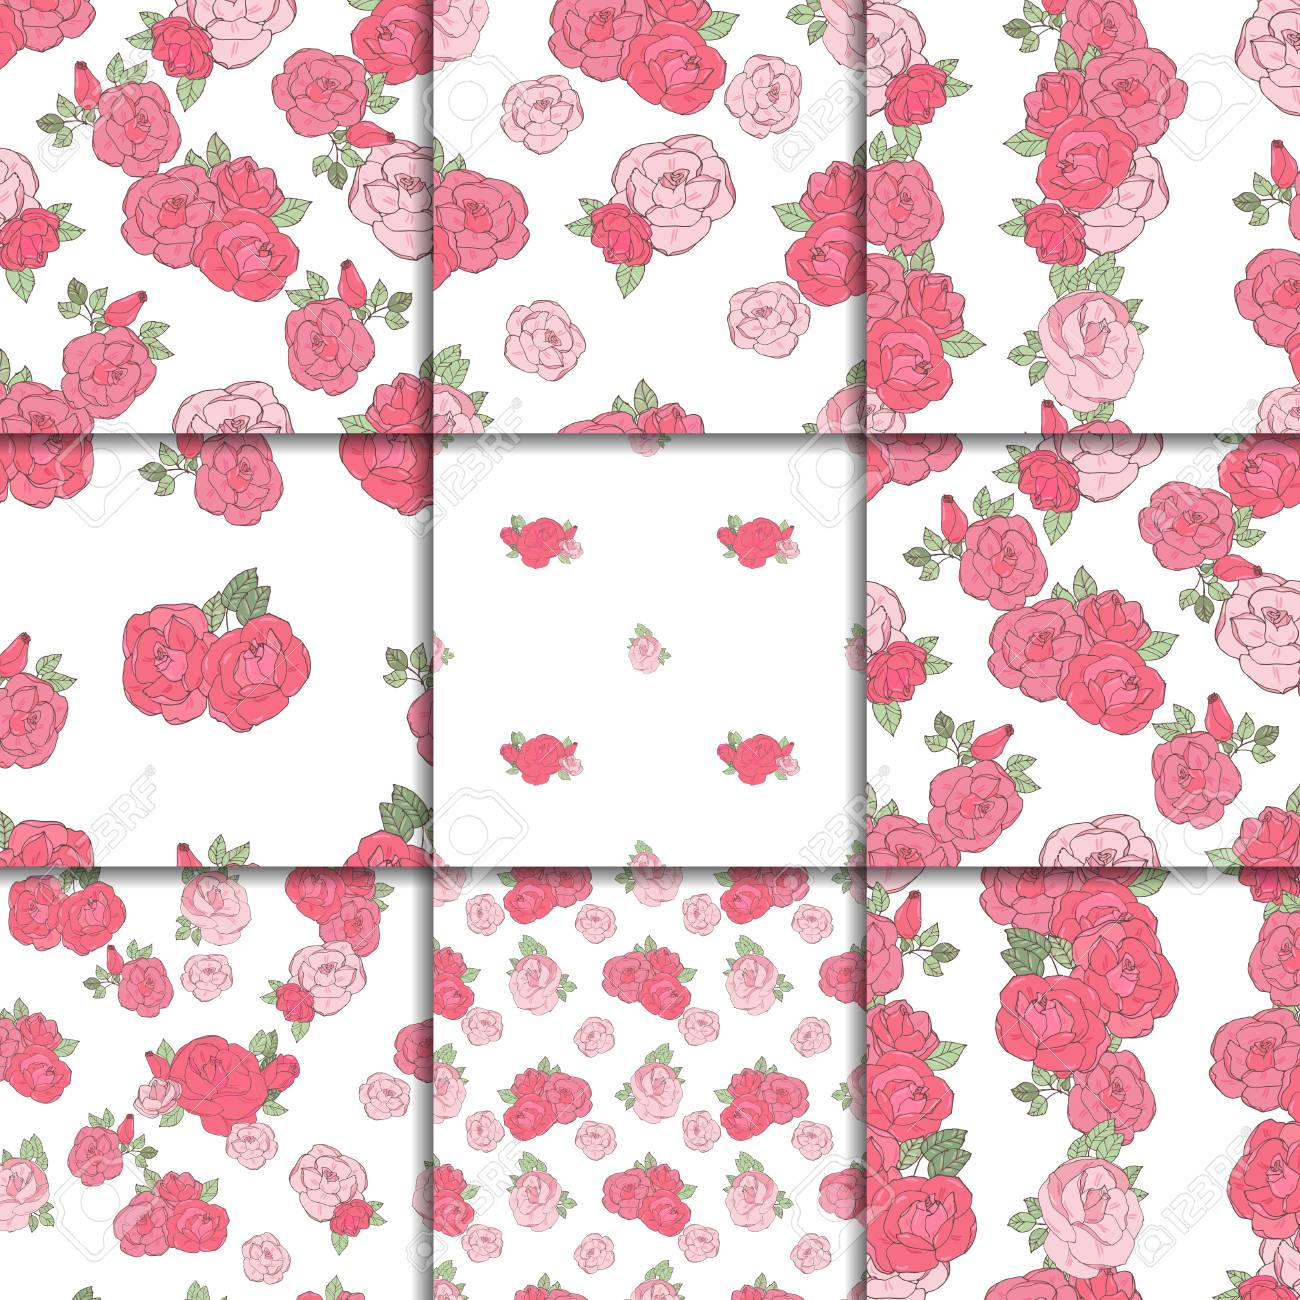 Nine Seamless Vintage Floral Patterns Pink Roses On The White